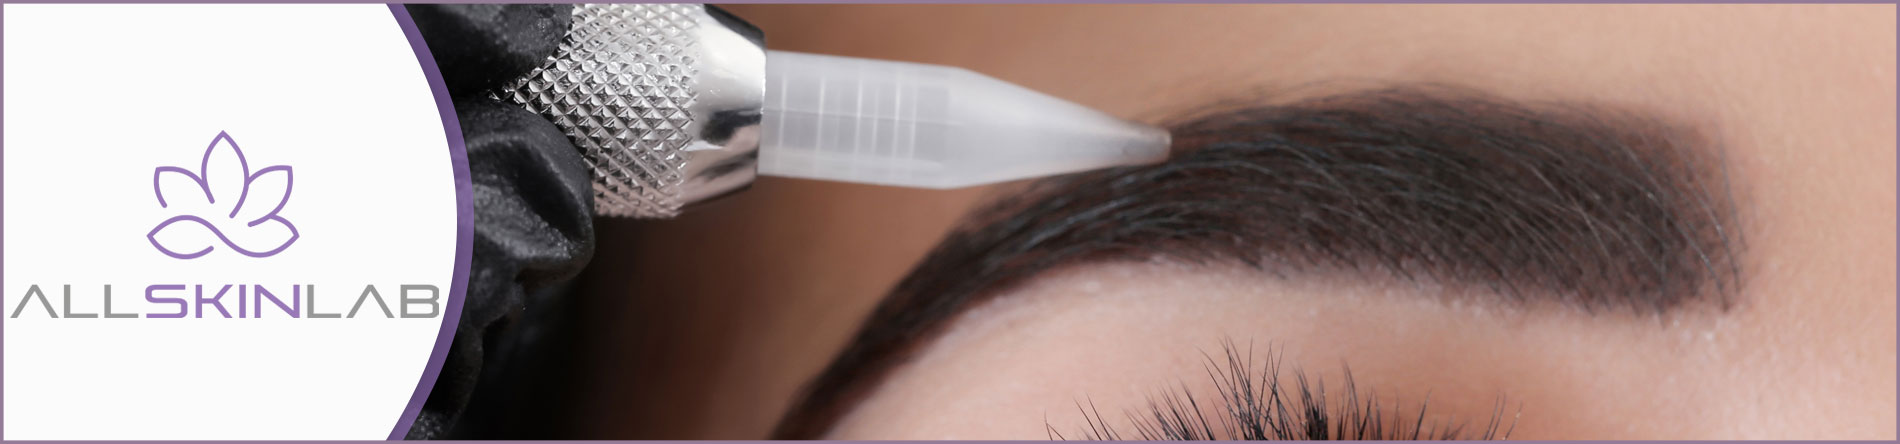 All Skin Lab  is a Permanent Makeup Clinic in New York, NY